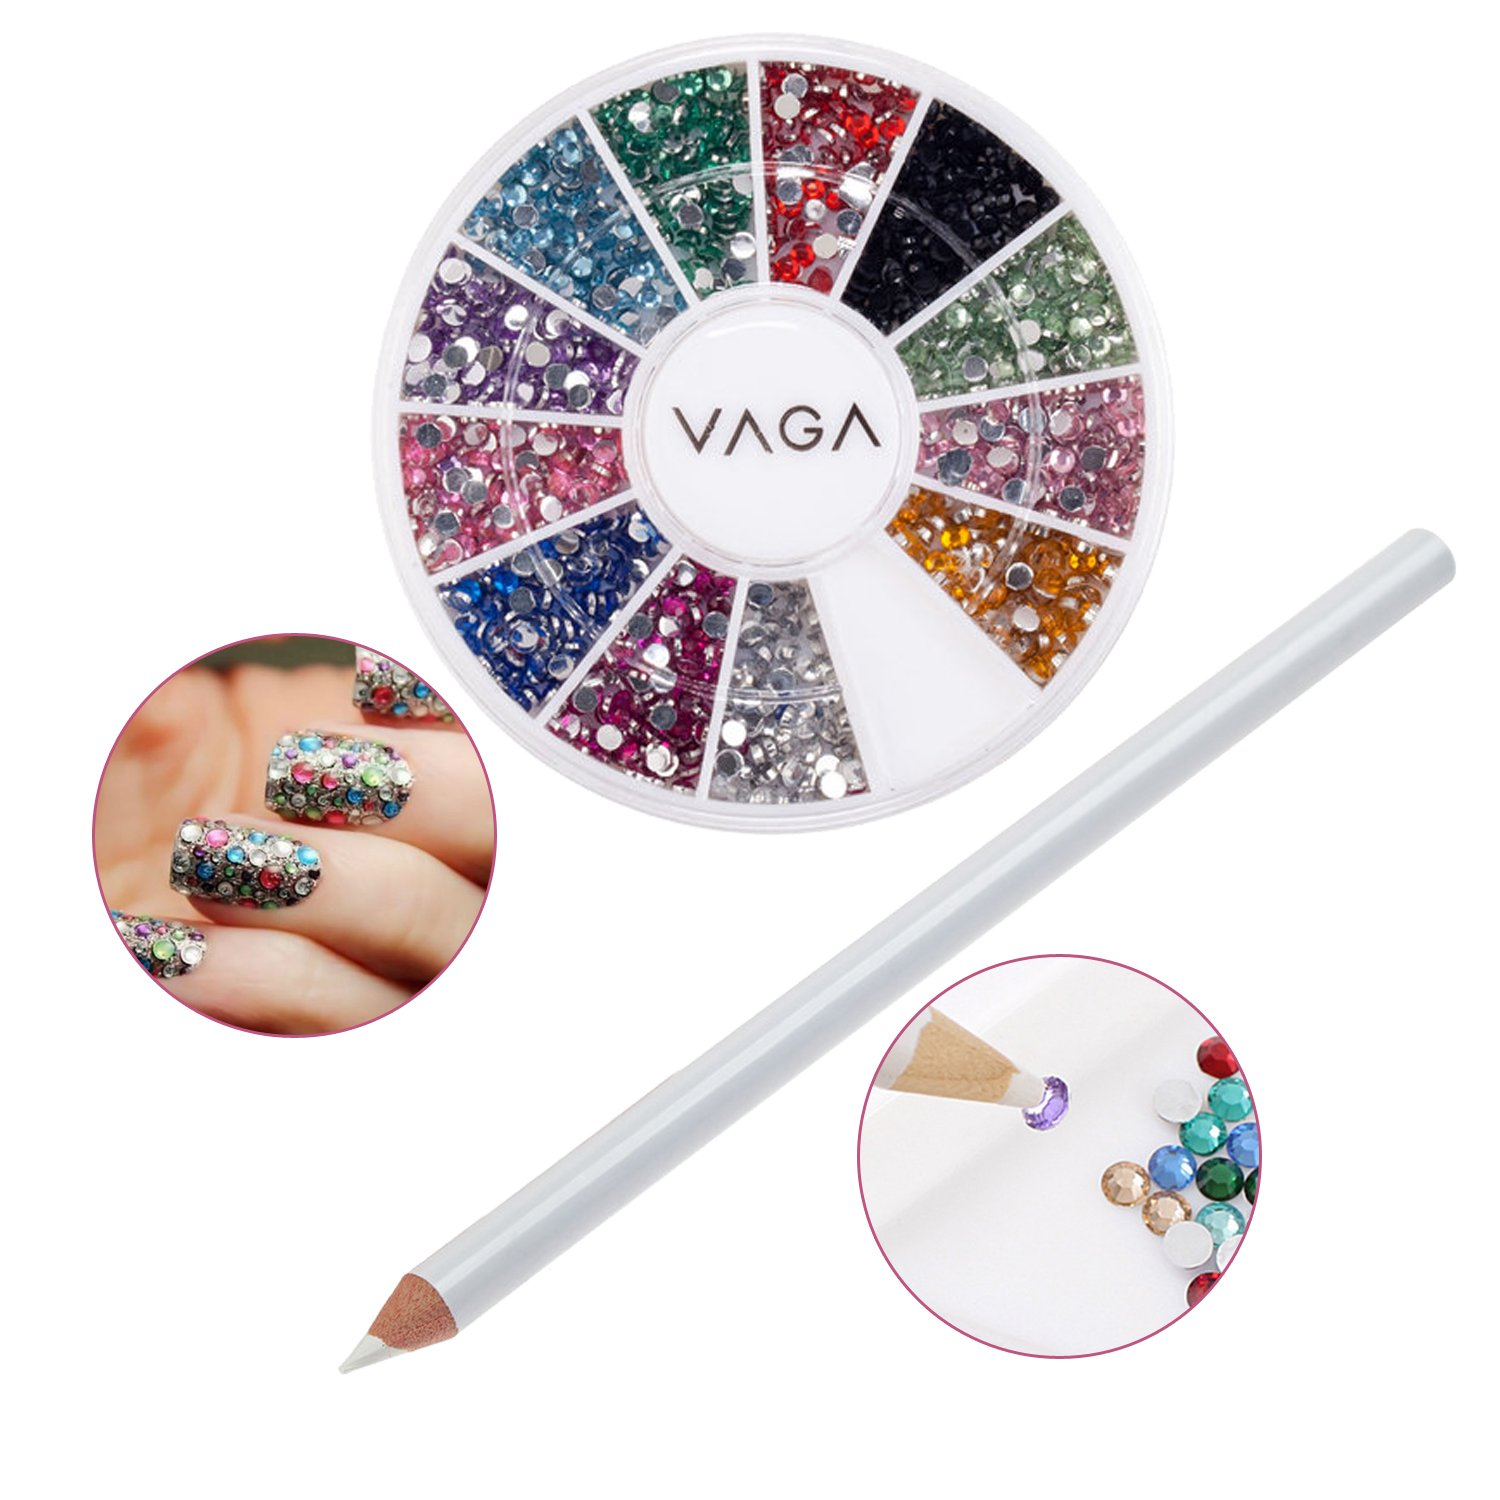 Professional High Quality Nail Art Accessories Set Including Wheel of Crystals / Gemstones In 12 Different Colours And White Wax Rhinestones Picker Pencil / Decorations Application Tool By VAGA